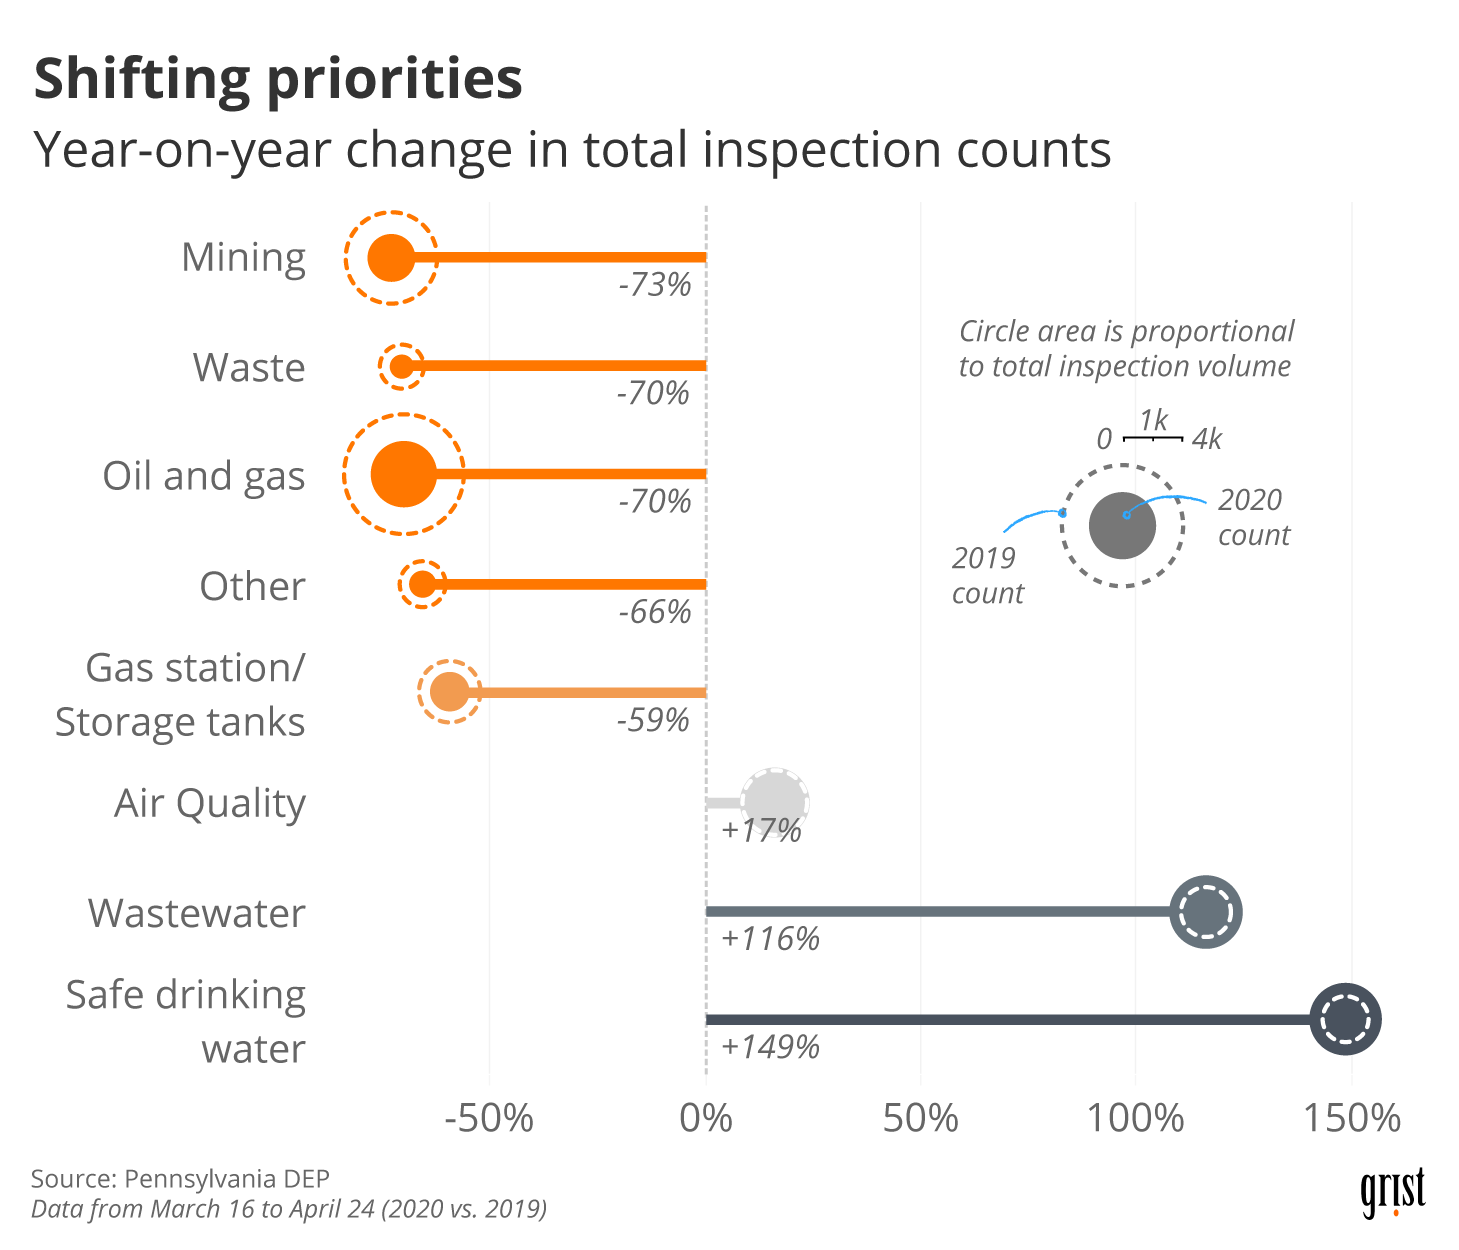 A chart comparing environmental inspections by the Pennsylvania DEP in 2019 and 2020 by inspection type. In March/April 2020, oil and gas inspections fell by 70 percent relative to the previous year.